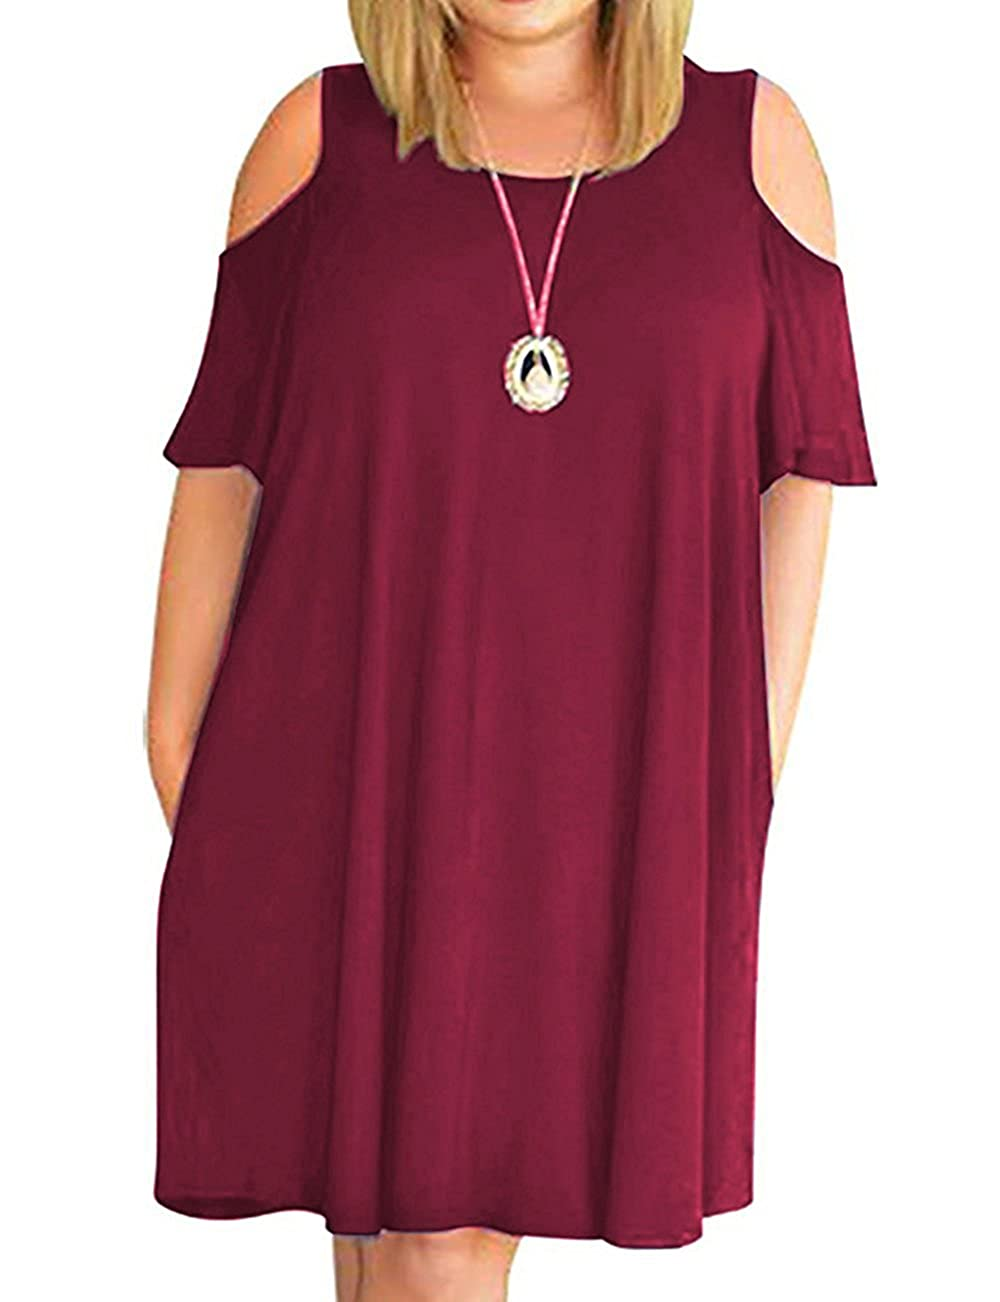 9491165d0ae Women plus size dress short sleeve cold shoulder t shirt dress casual swing  dress with pockets. Feature  Round neck